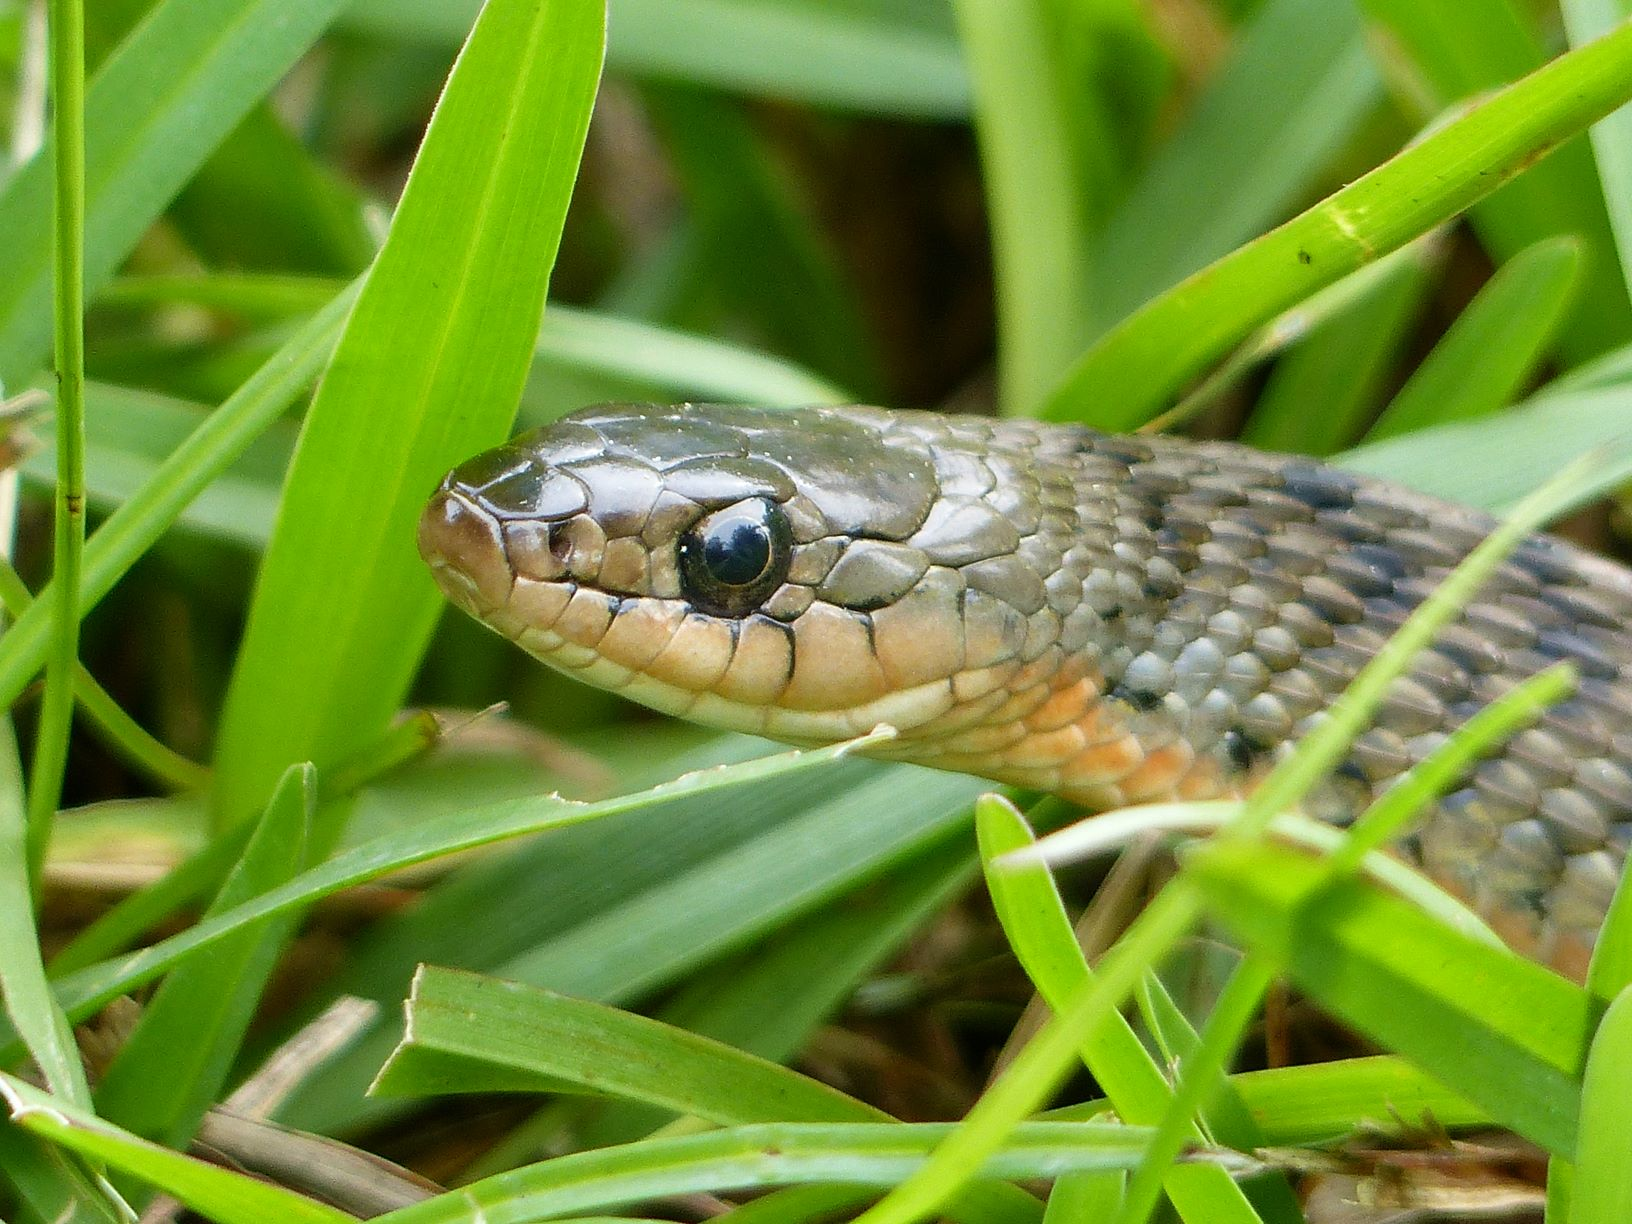 Great shot of the head showing the loreal scale (unique to non-venomous snakes) the upturned mouth that looks like it's smiling, and the dark lines between the scales on the upper lip. The Rough-scaled Snake doesn't have a loreal scale, the mouth is flatter and there are no dark lines between the scales on the upper lip.